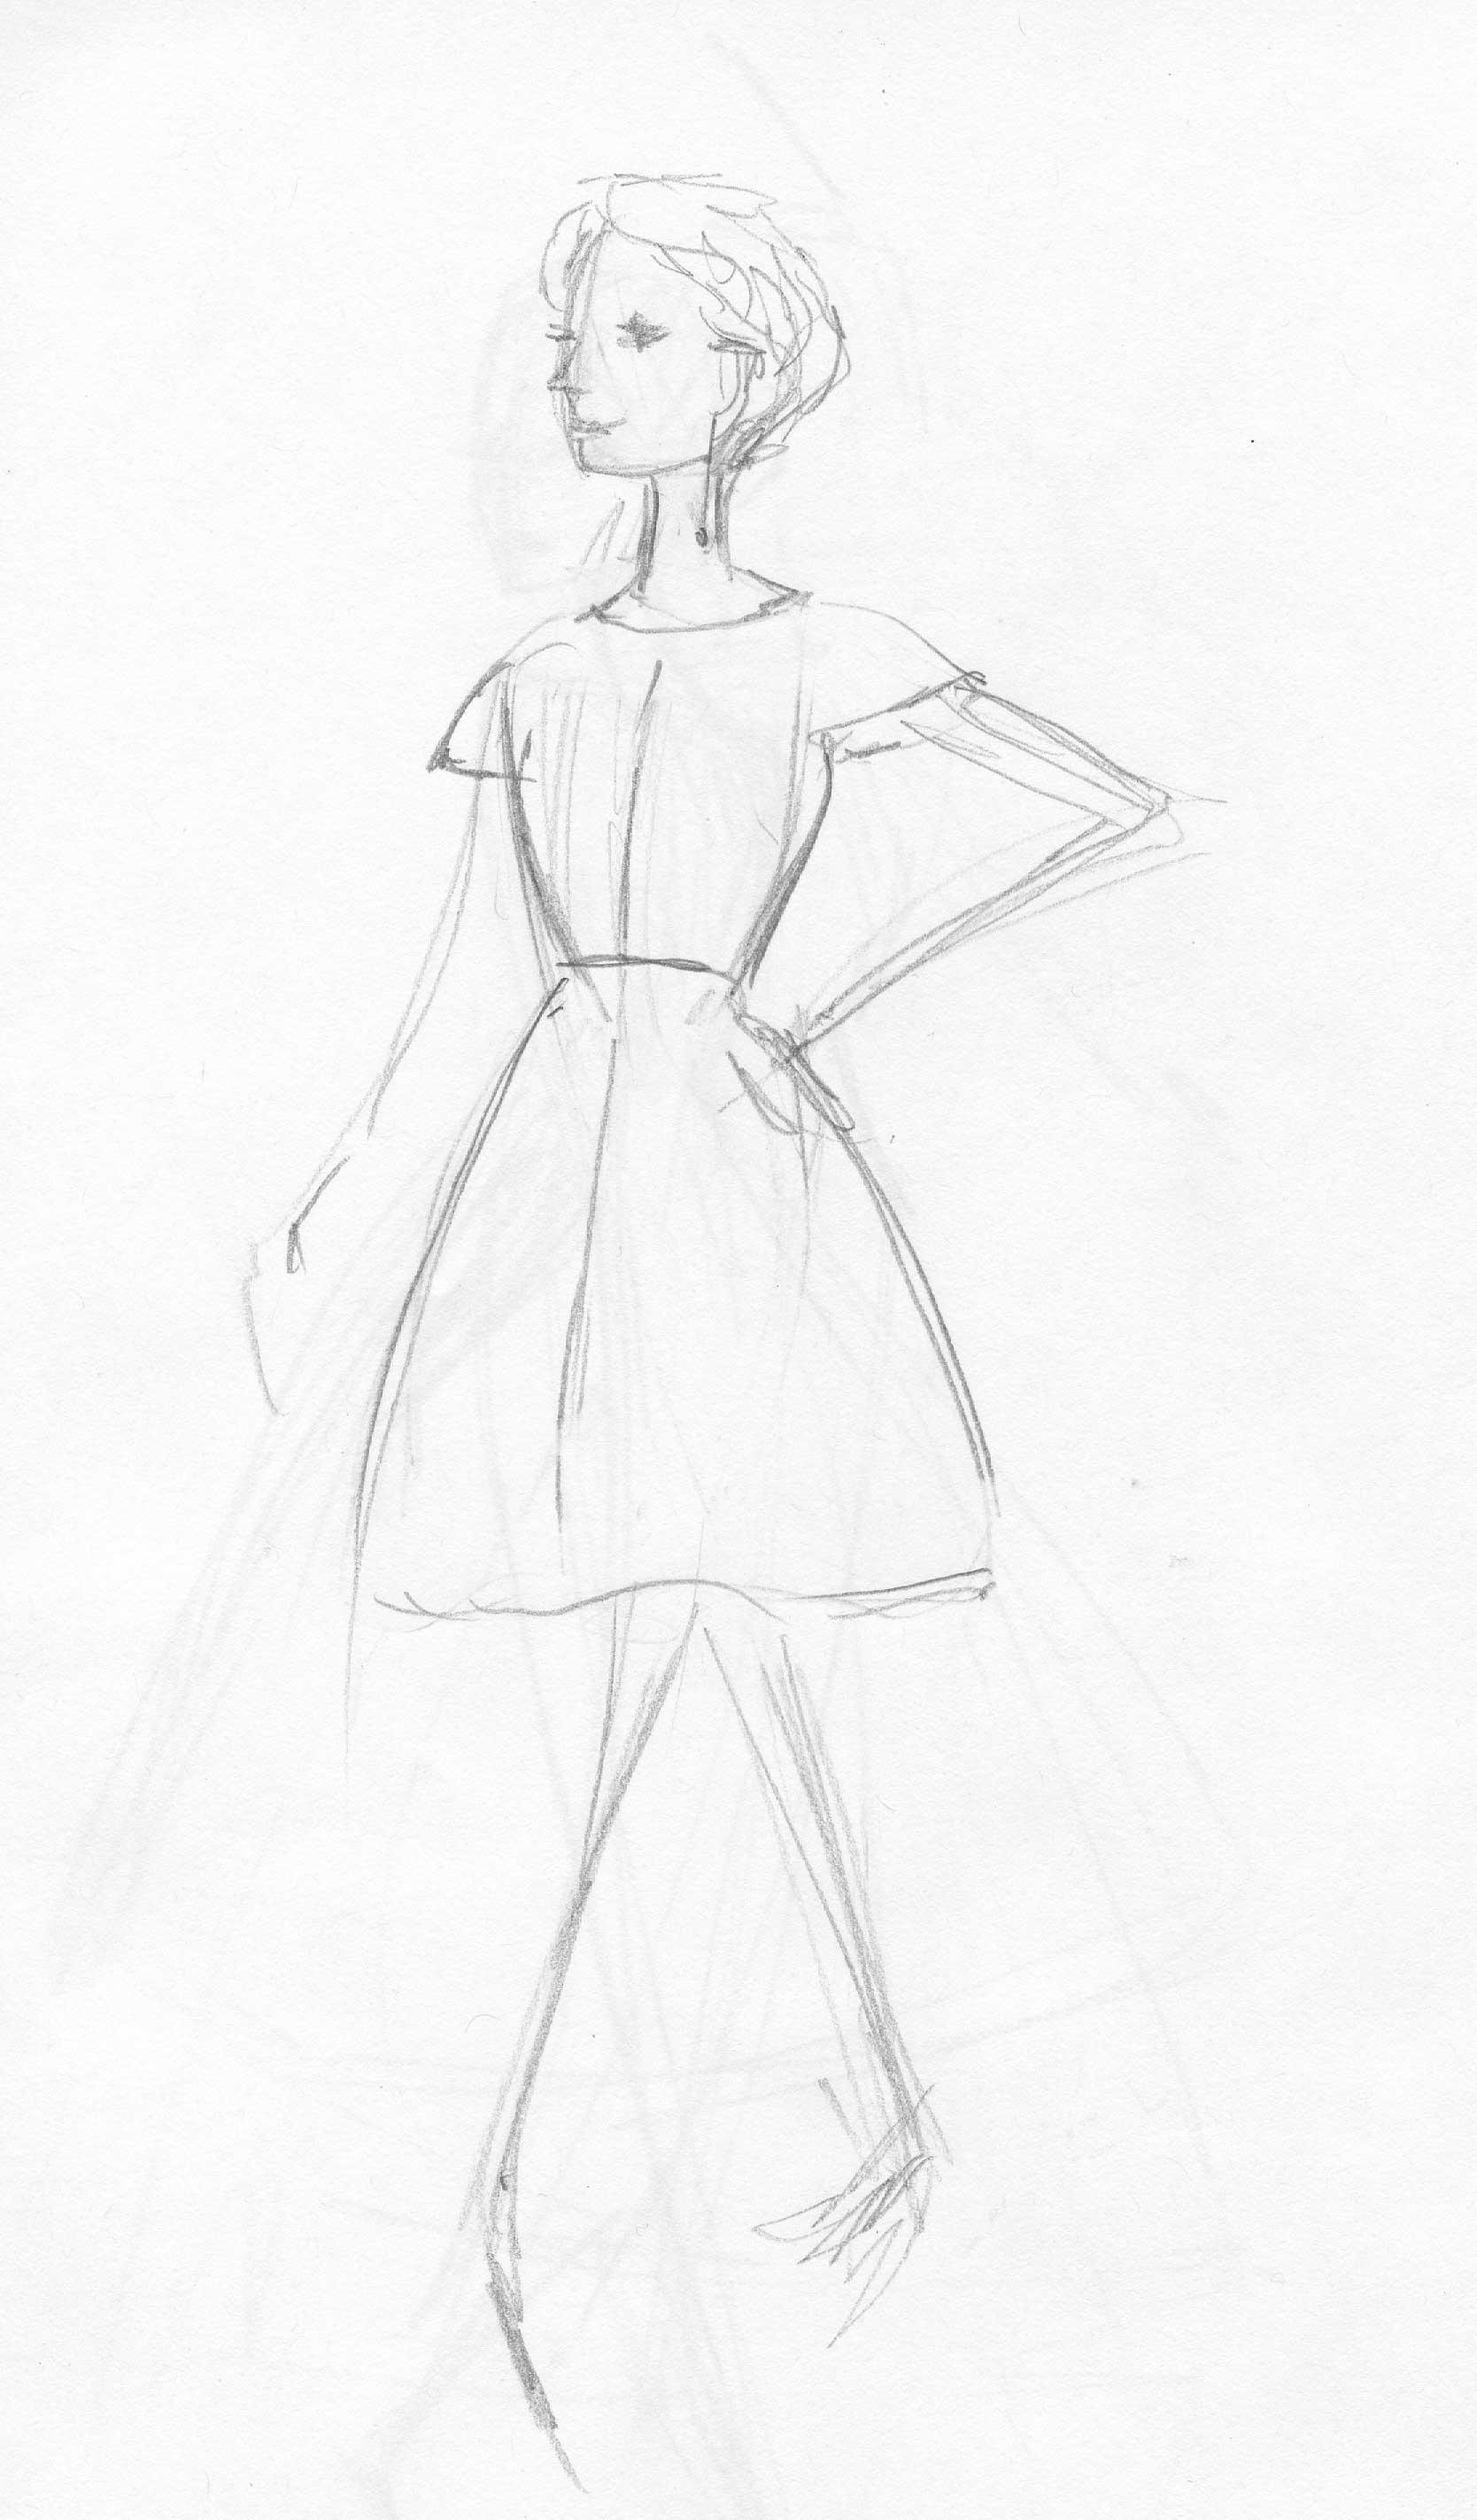 *(SKETCHES)* a walk down memory lane - image 14 - student project